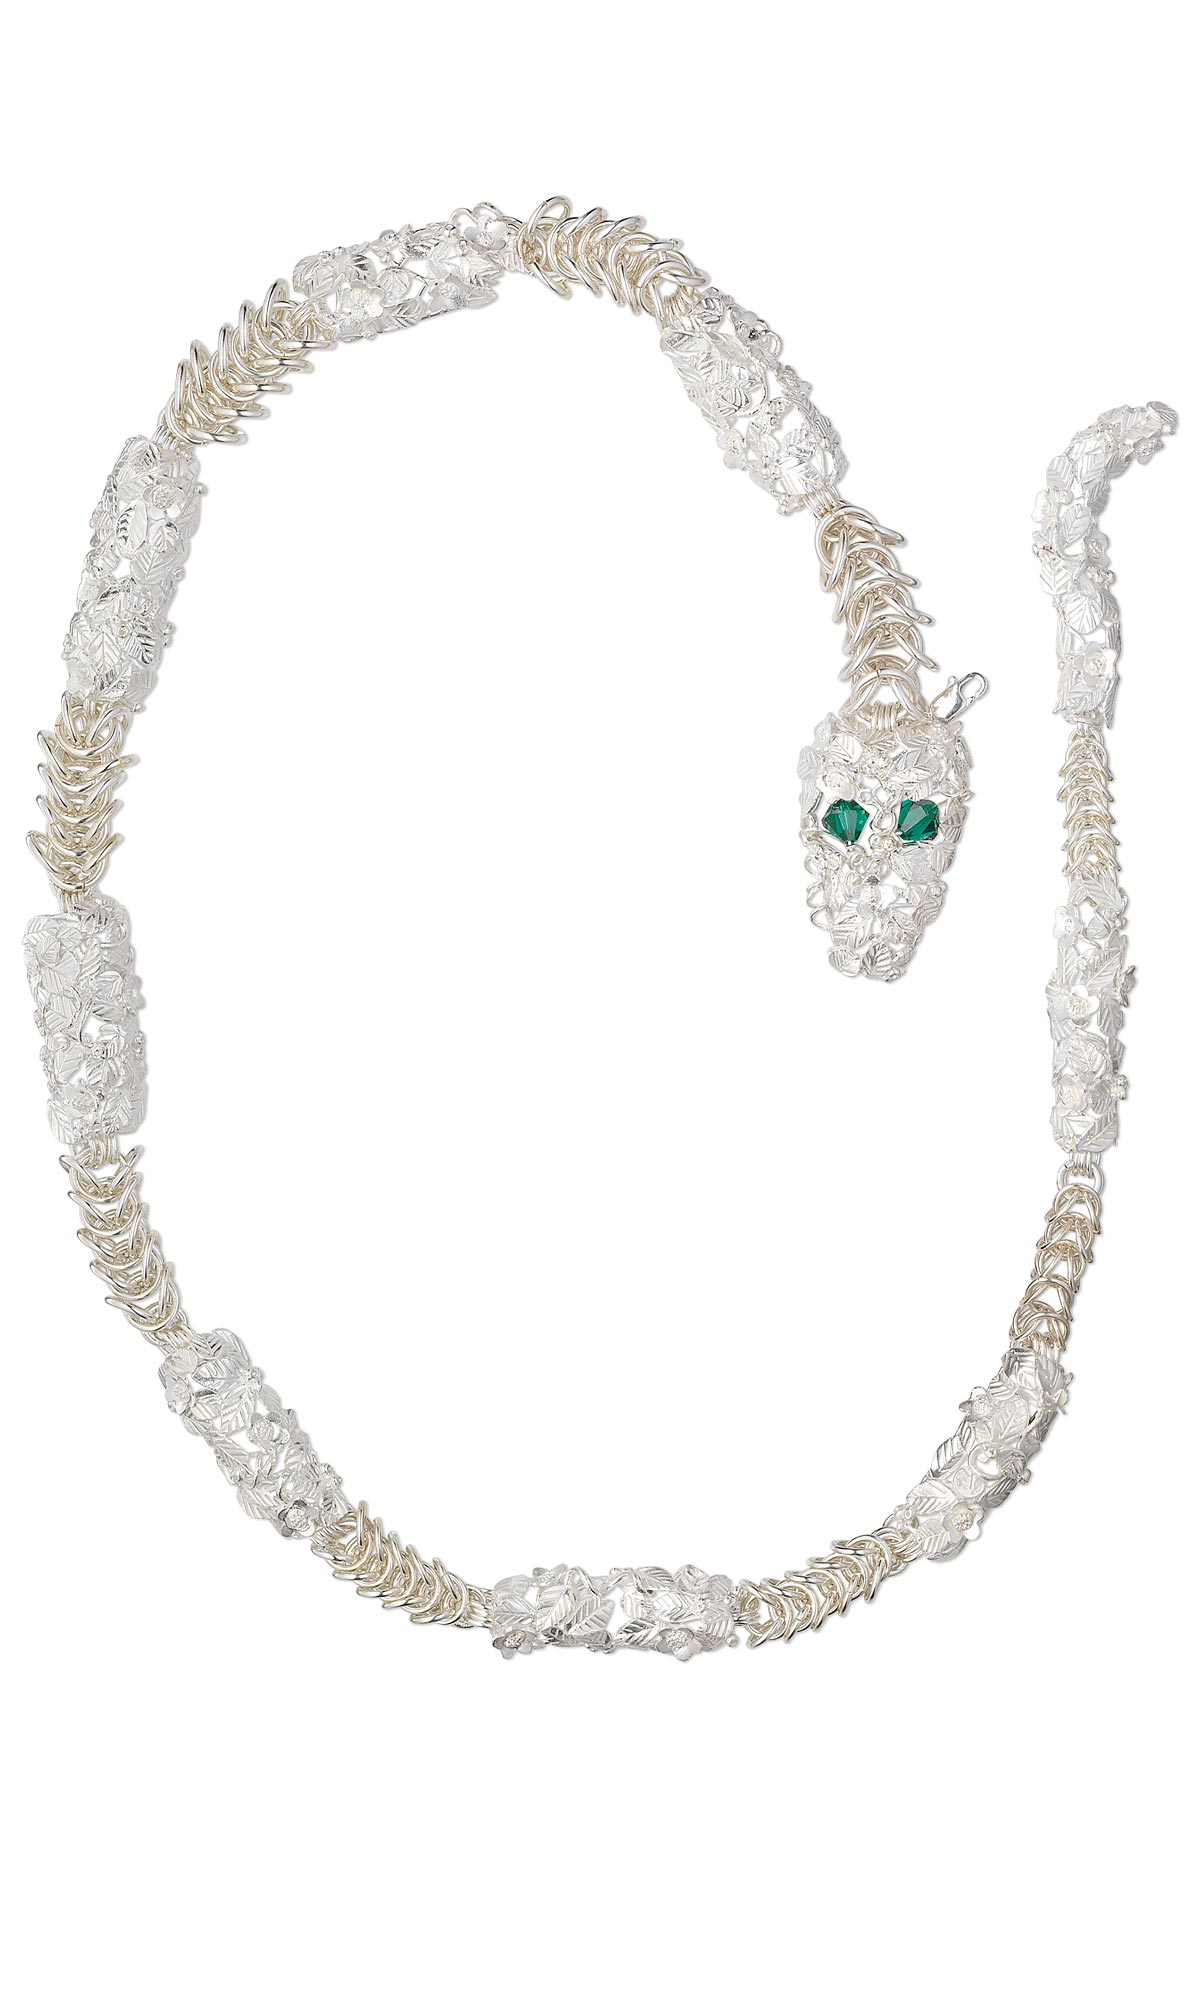 Jewelry Design Single Strand Snake Necklace With